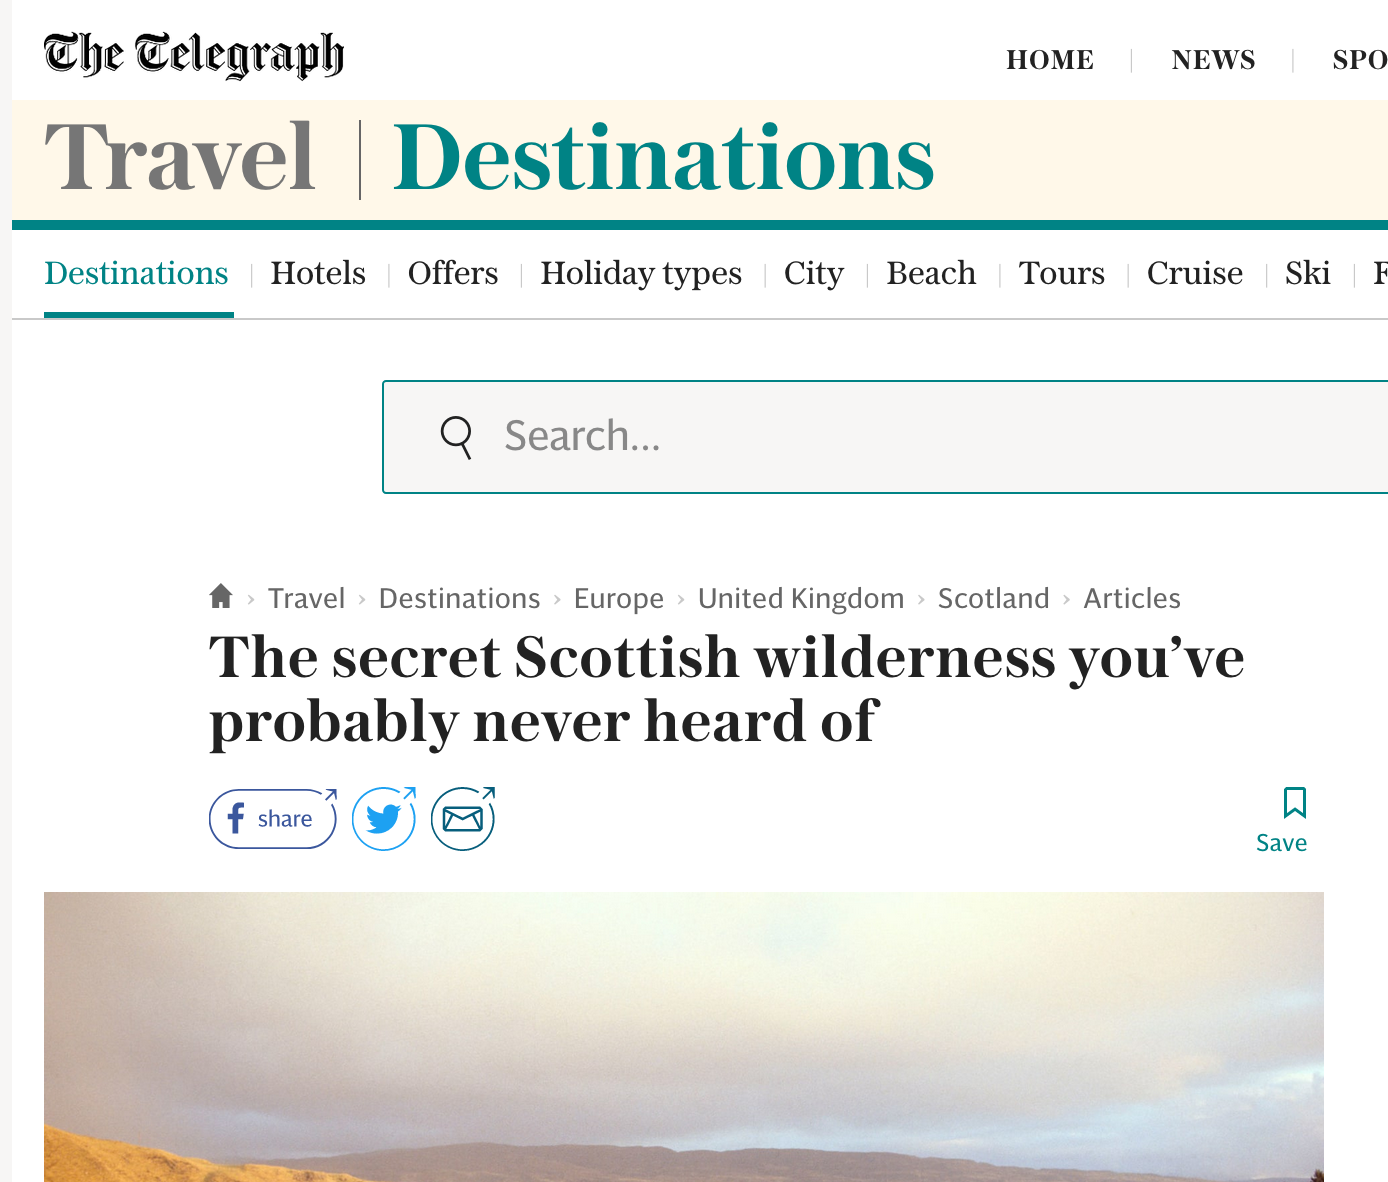 The Telegraph - Scottish wilderness you've probably never heard of